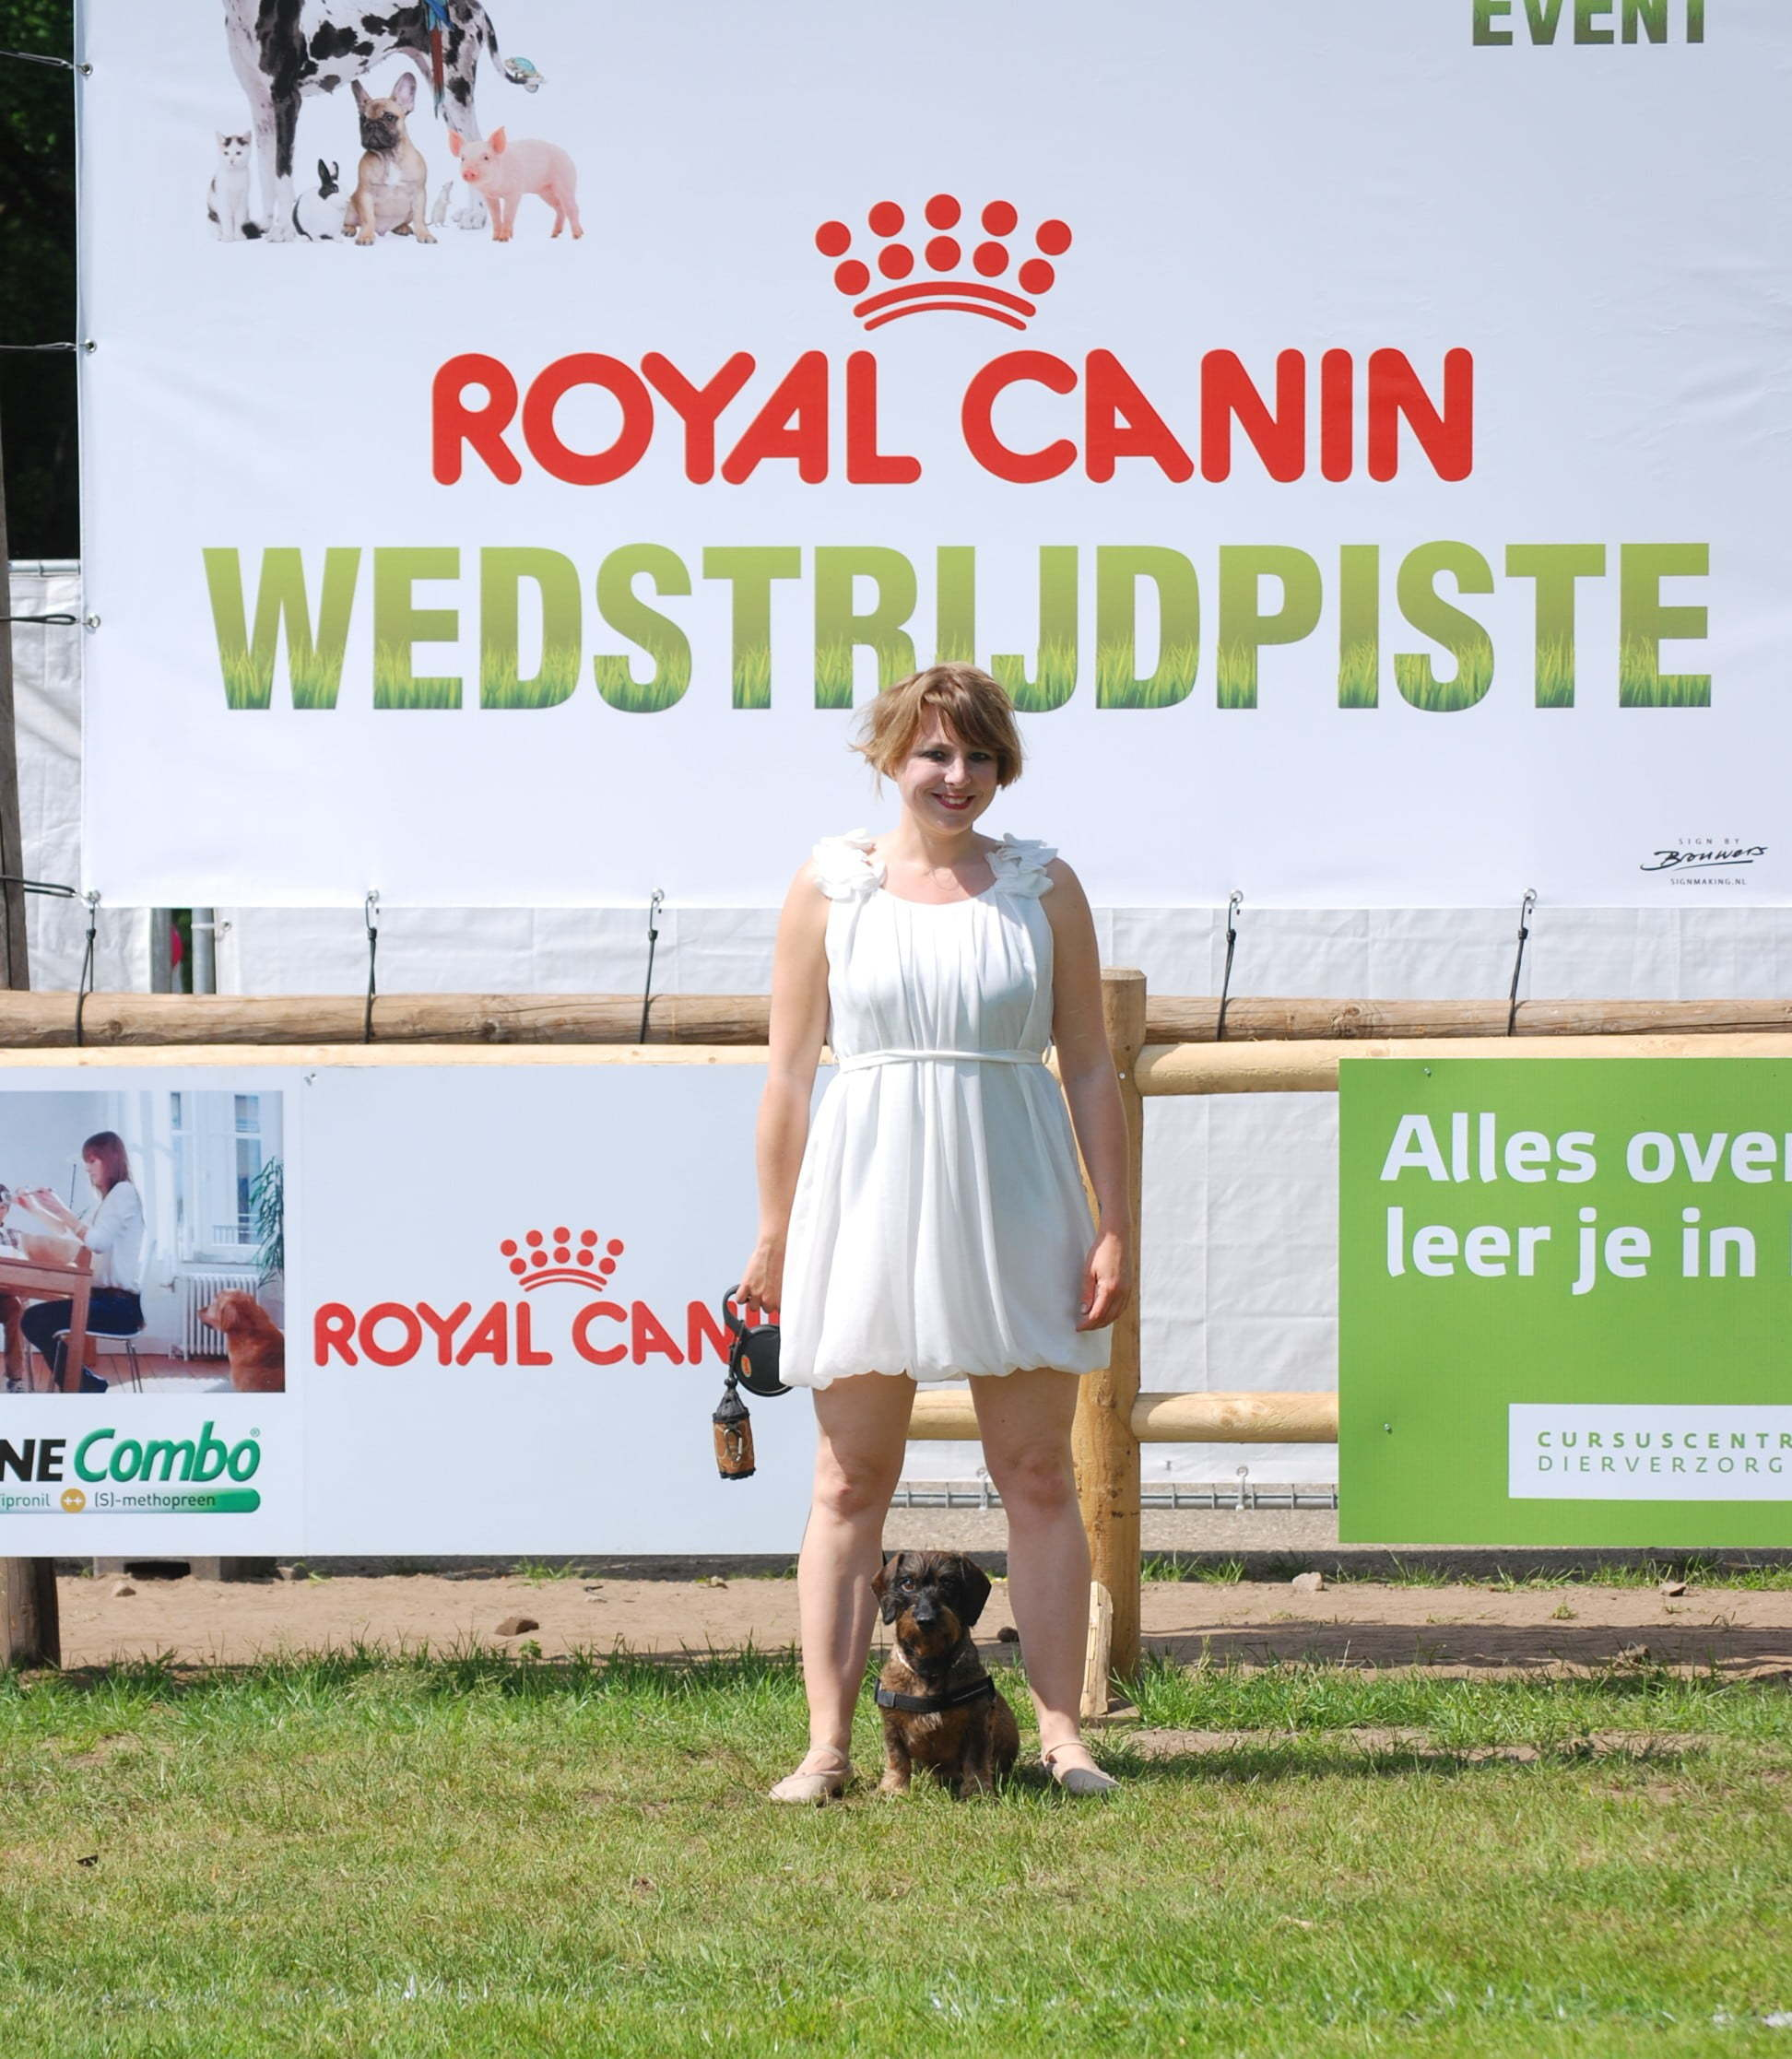 Met teckel op Animal Event